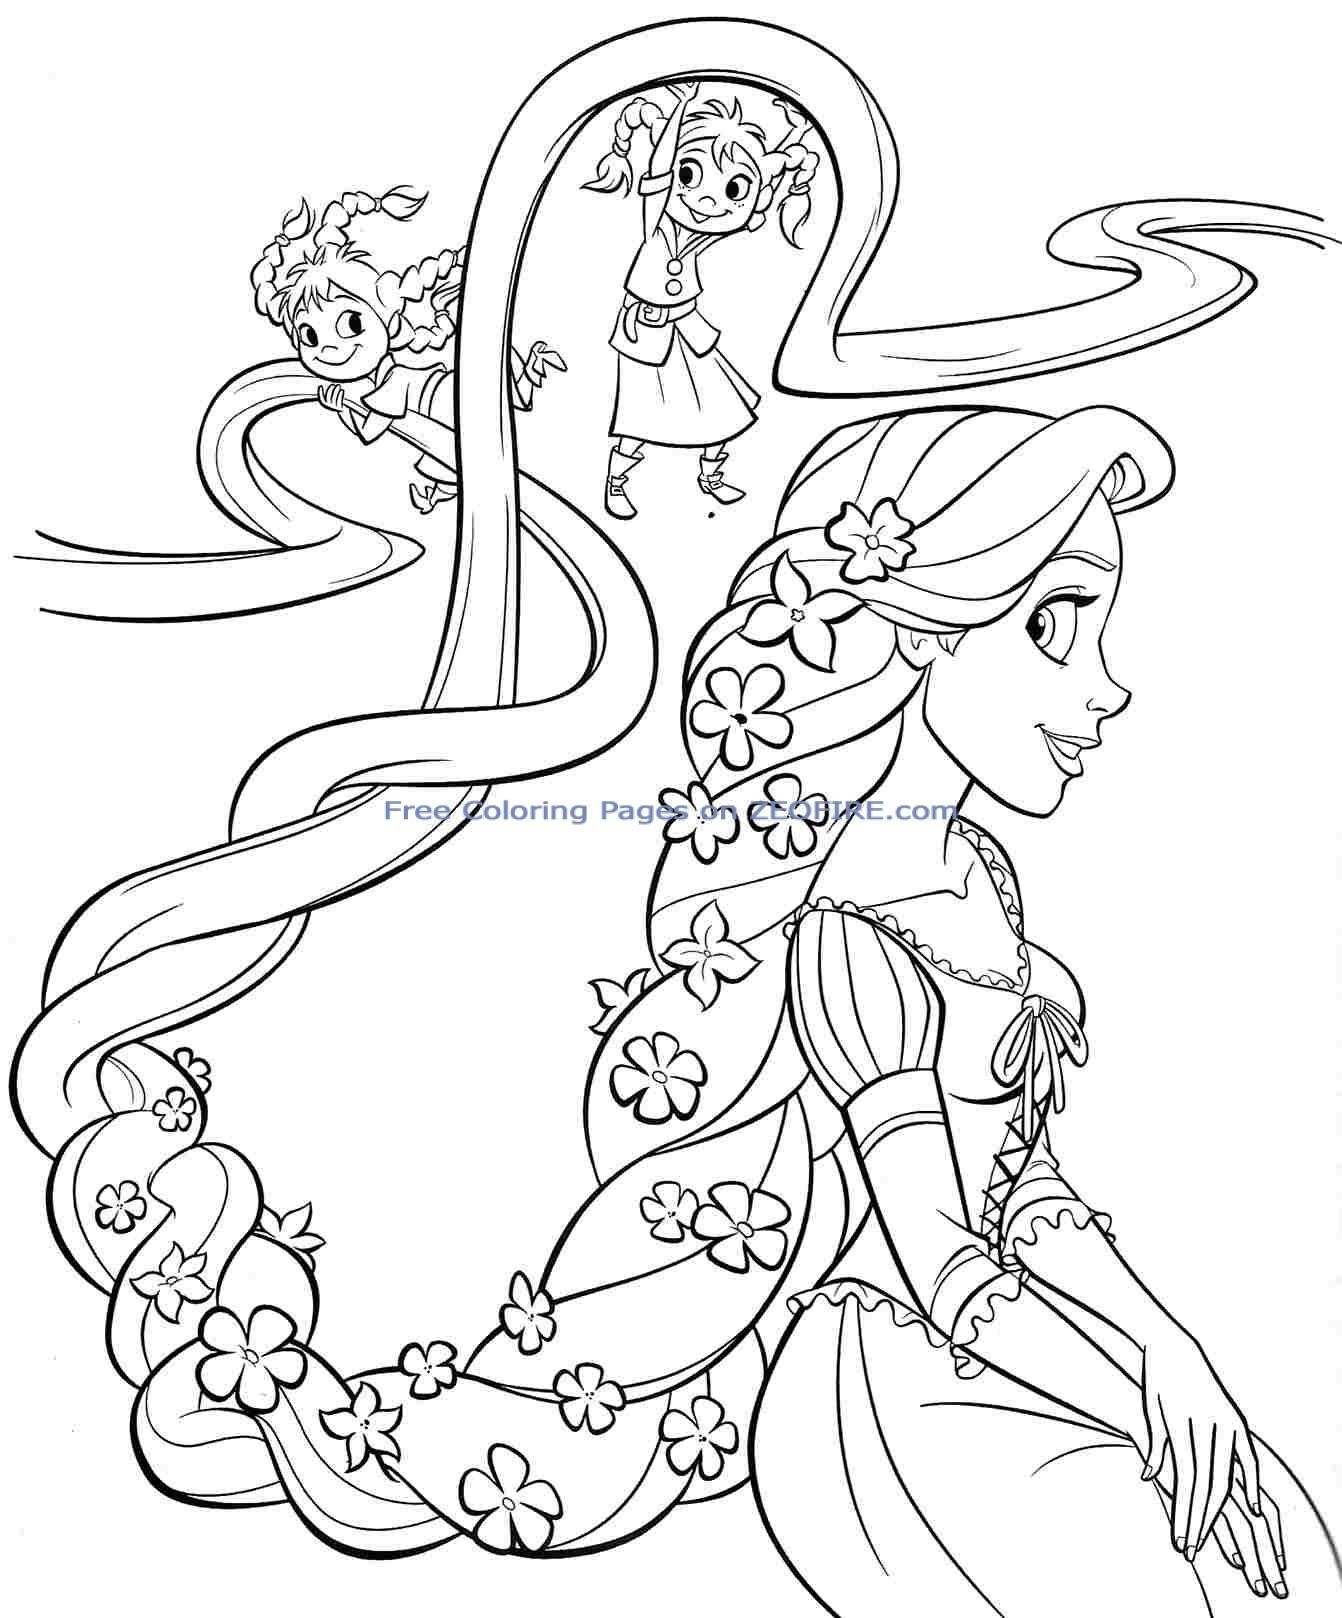 Merida Coloring Pages Awesome Amazing Princess Coloring Pages Printables 88 Free